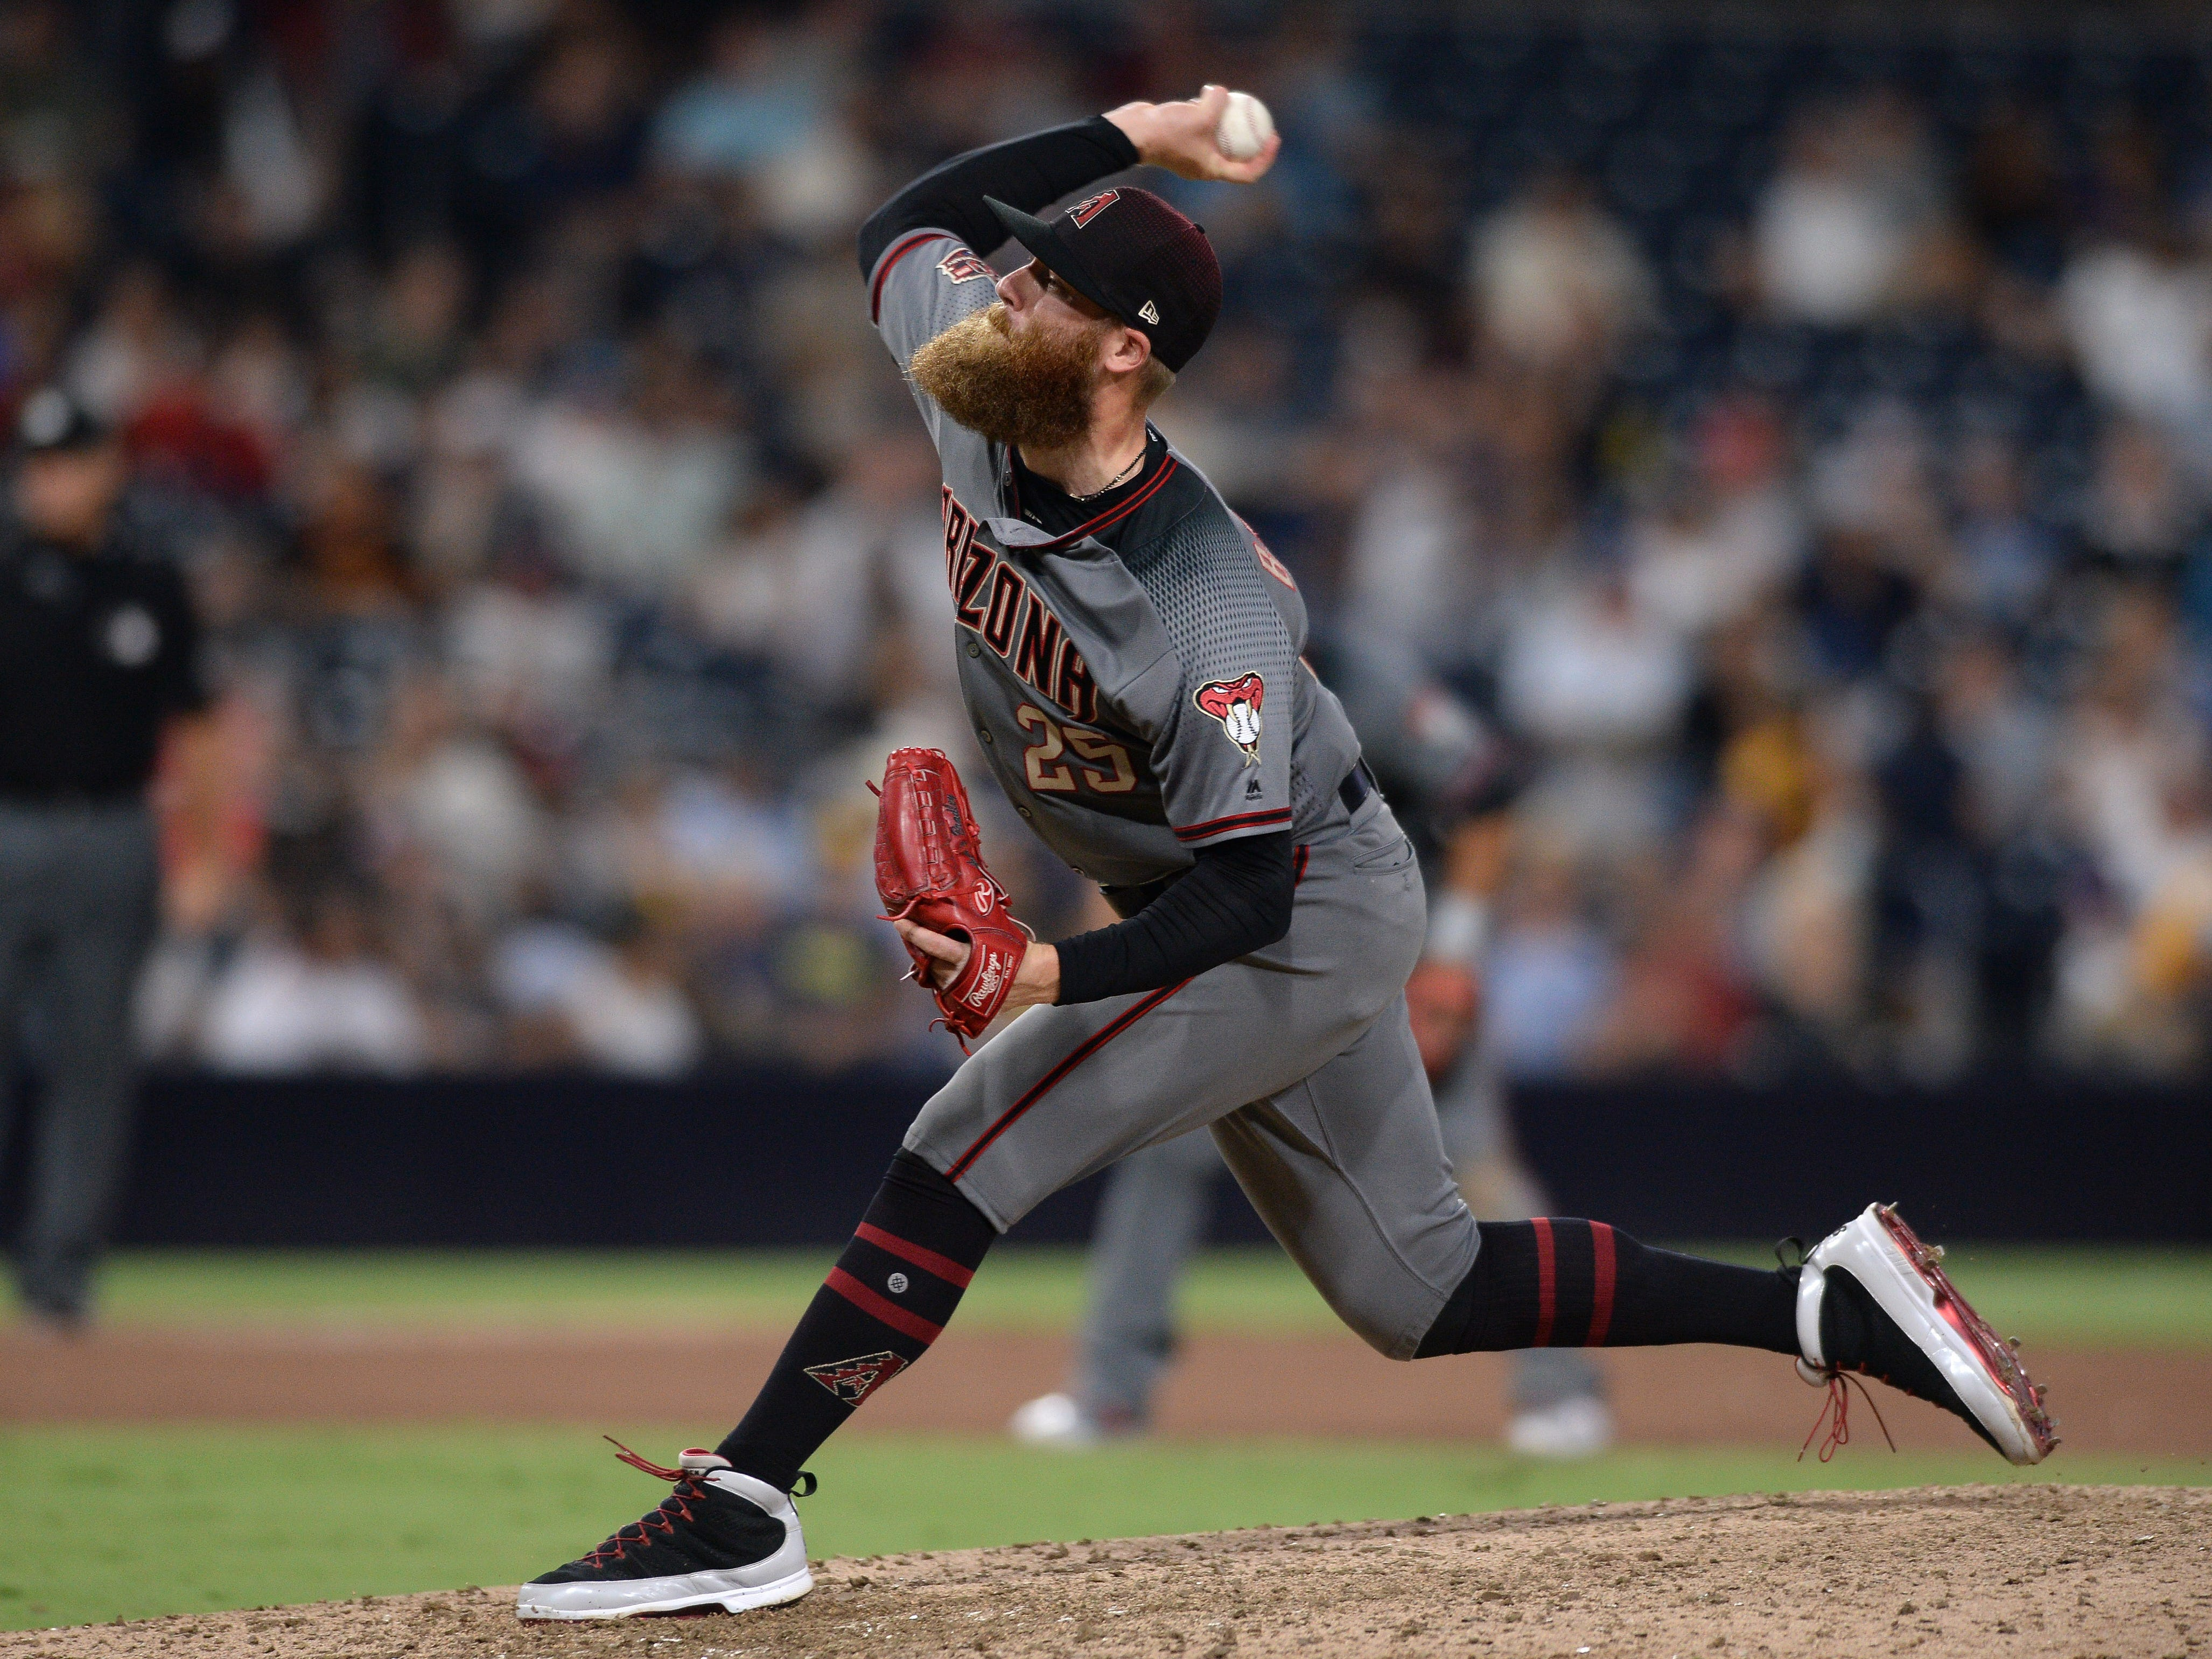 Aug 18, 2018: Arizona Diamondbacks relief pitcher Archie Bradley works against a San Diego Padres batter during the eighth inning at Petco Park.